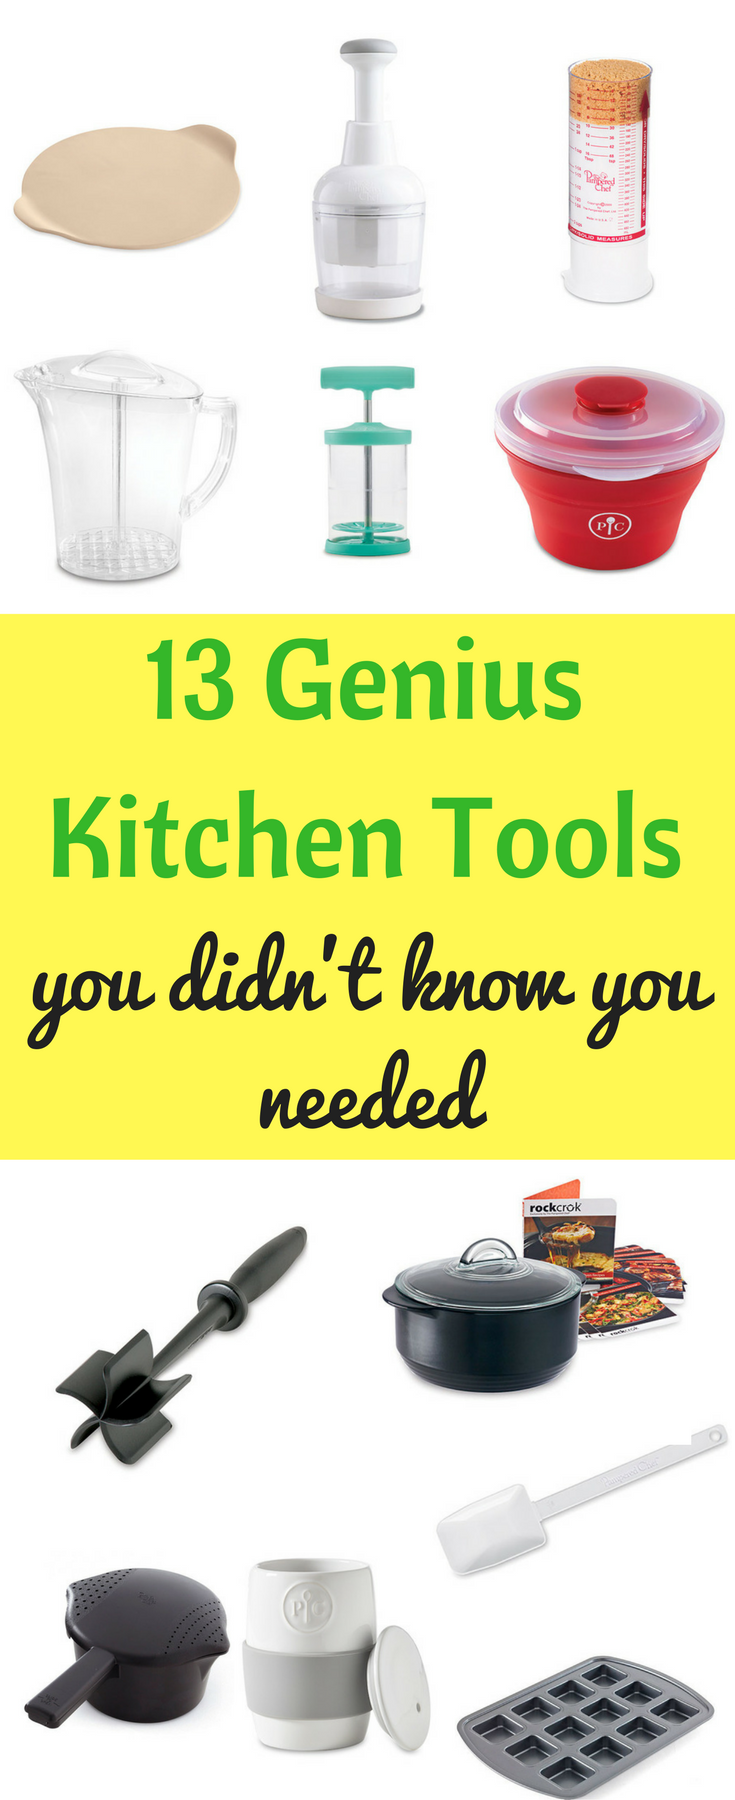 Best Pampered Chef Products / Genius Kitchen Tools / Helpful Kitchen Tools / Kitchen/ Cooking / Beginning Cook / Cooking Utensils / Mother's Day Gifts / Gift Ideas / College Gift Ideas